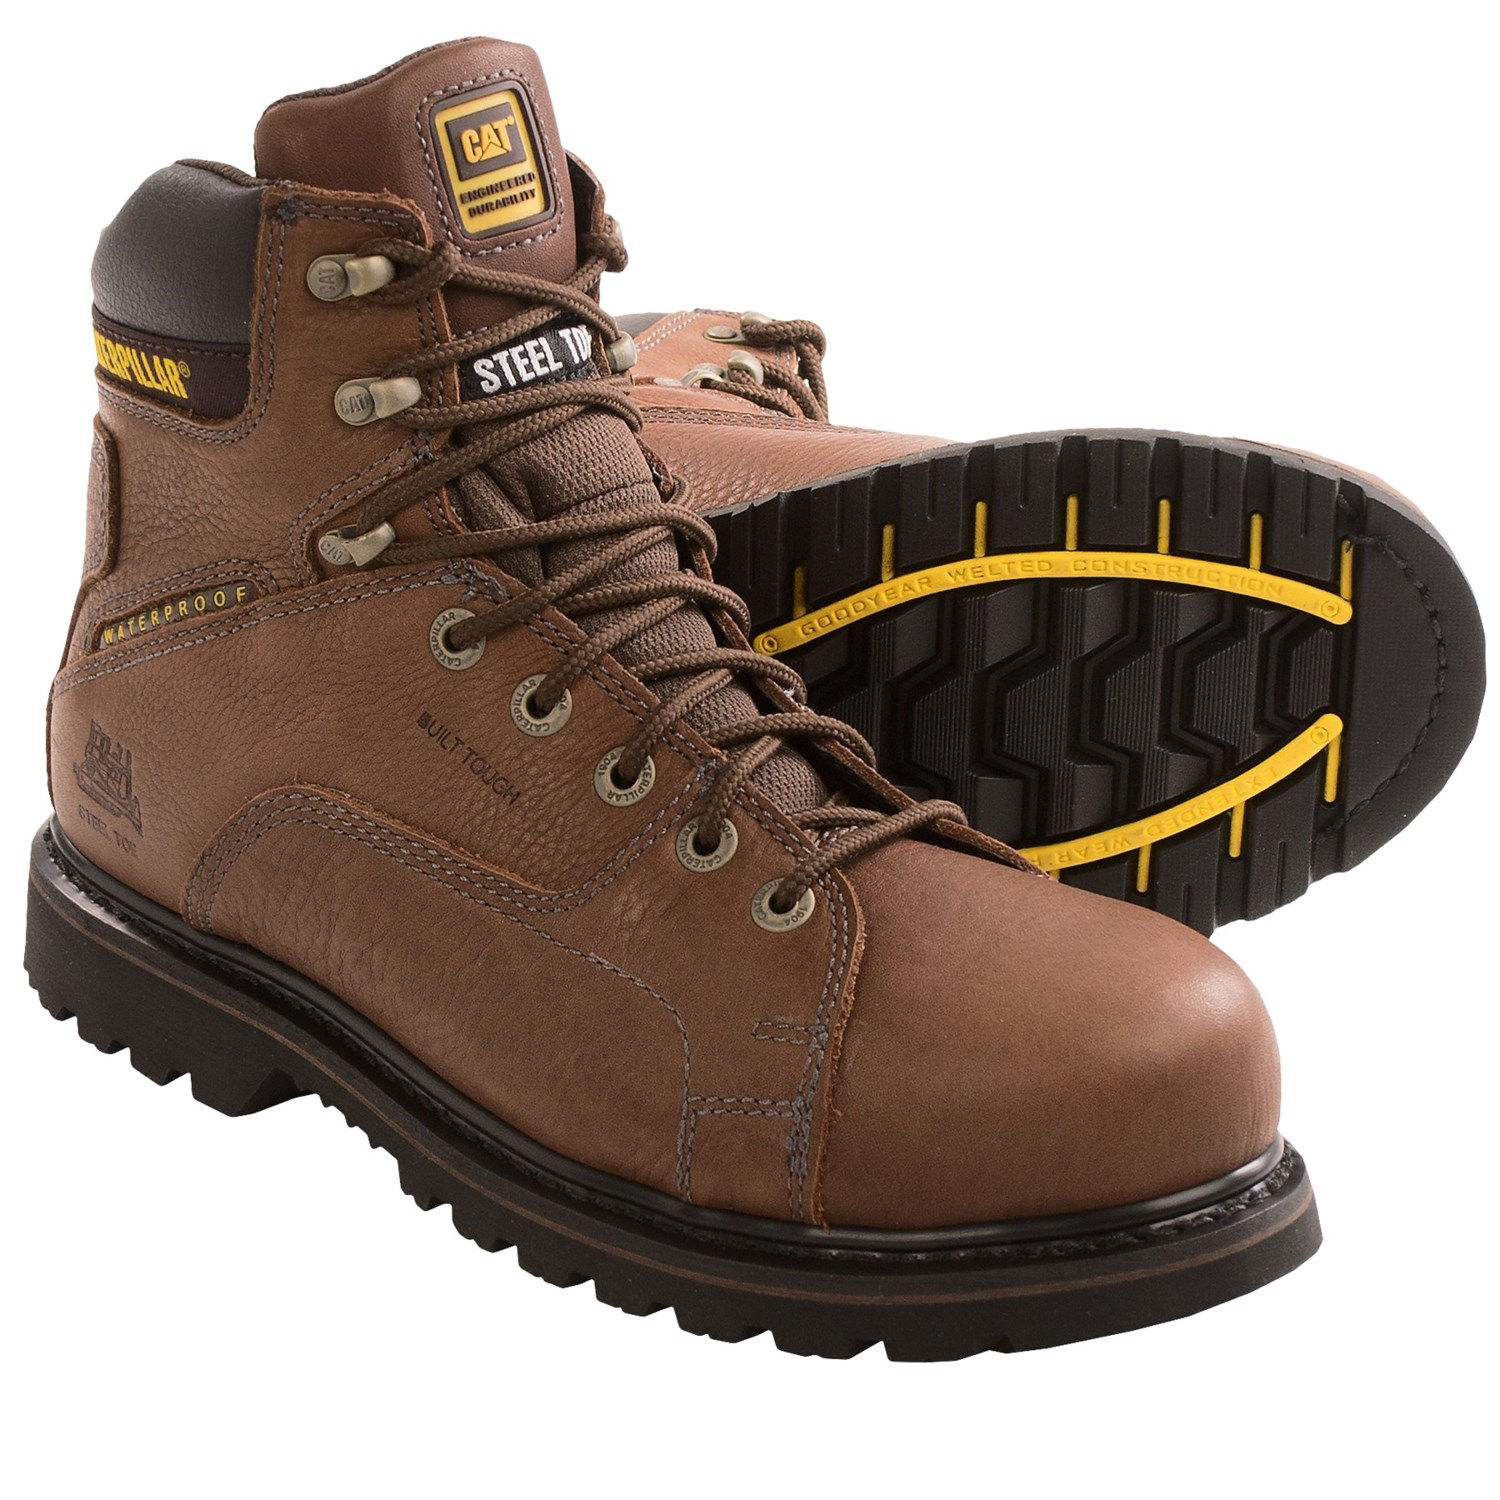 Caterpillar Levy Work Boots (For Men) 8994W - Save 32%